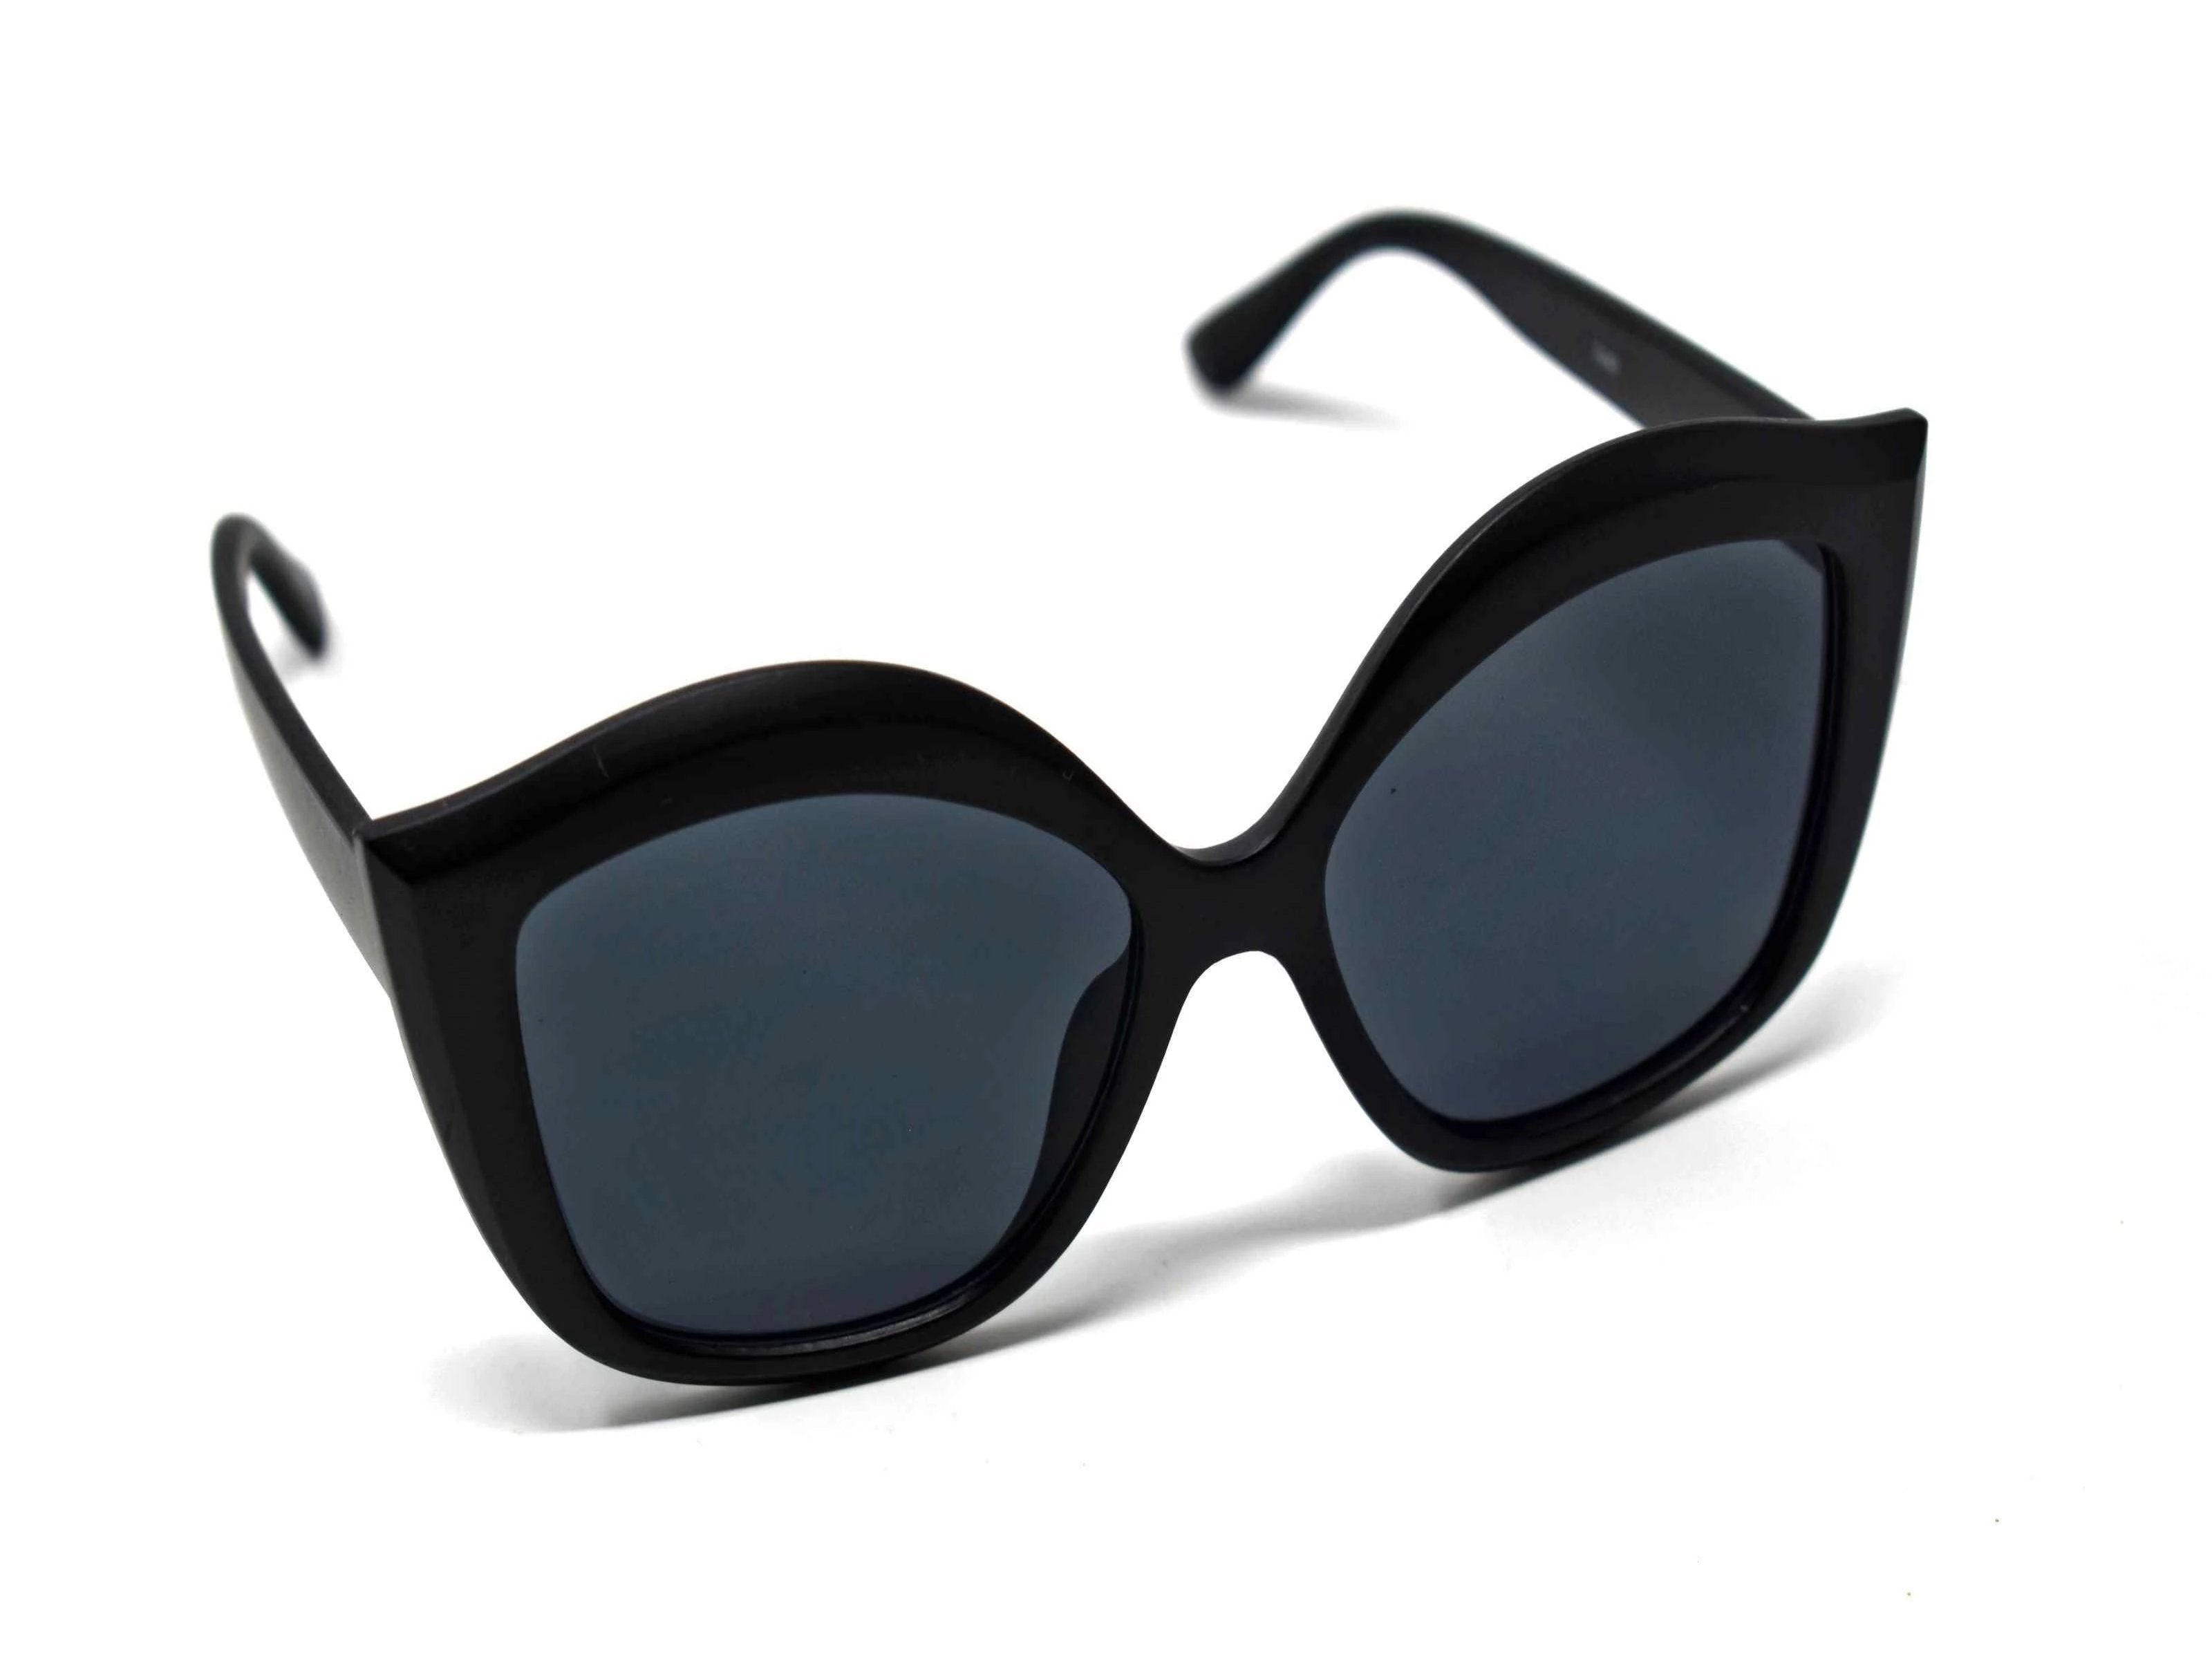 Retro glam has come again with our Petal matte black cat eye frame sunglasses with a black lens.